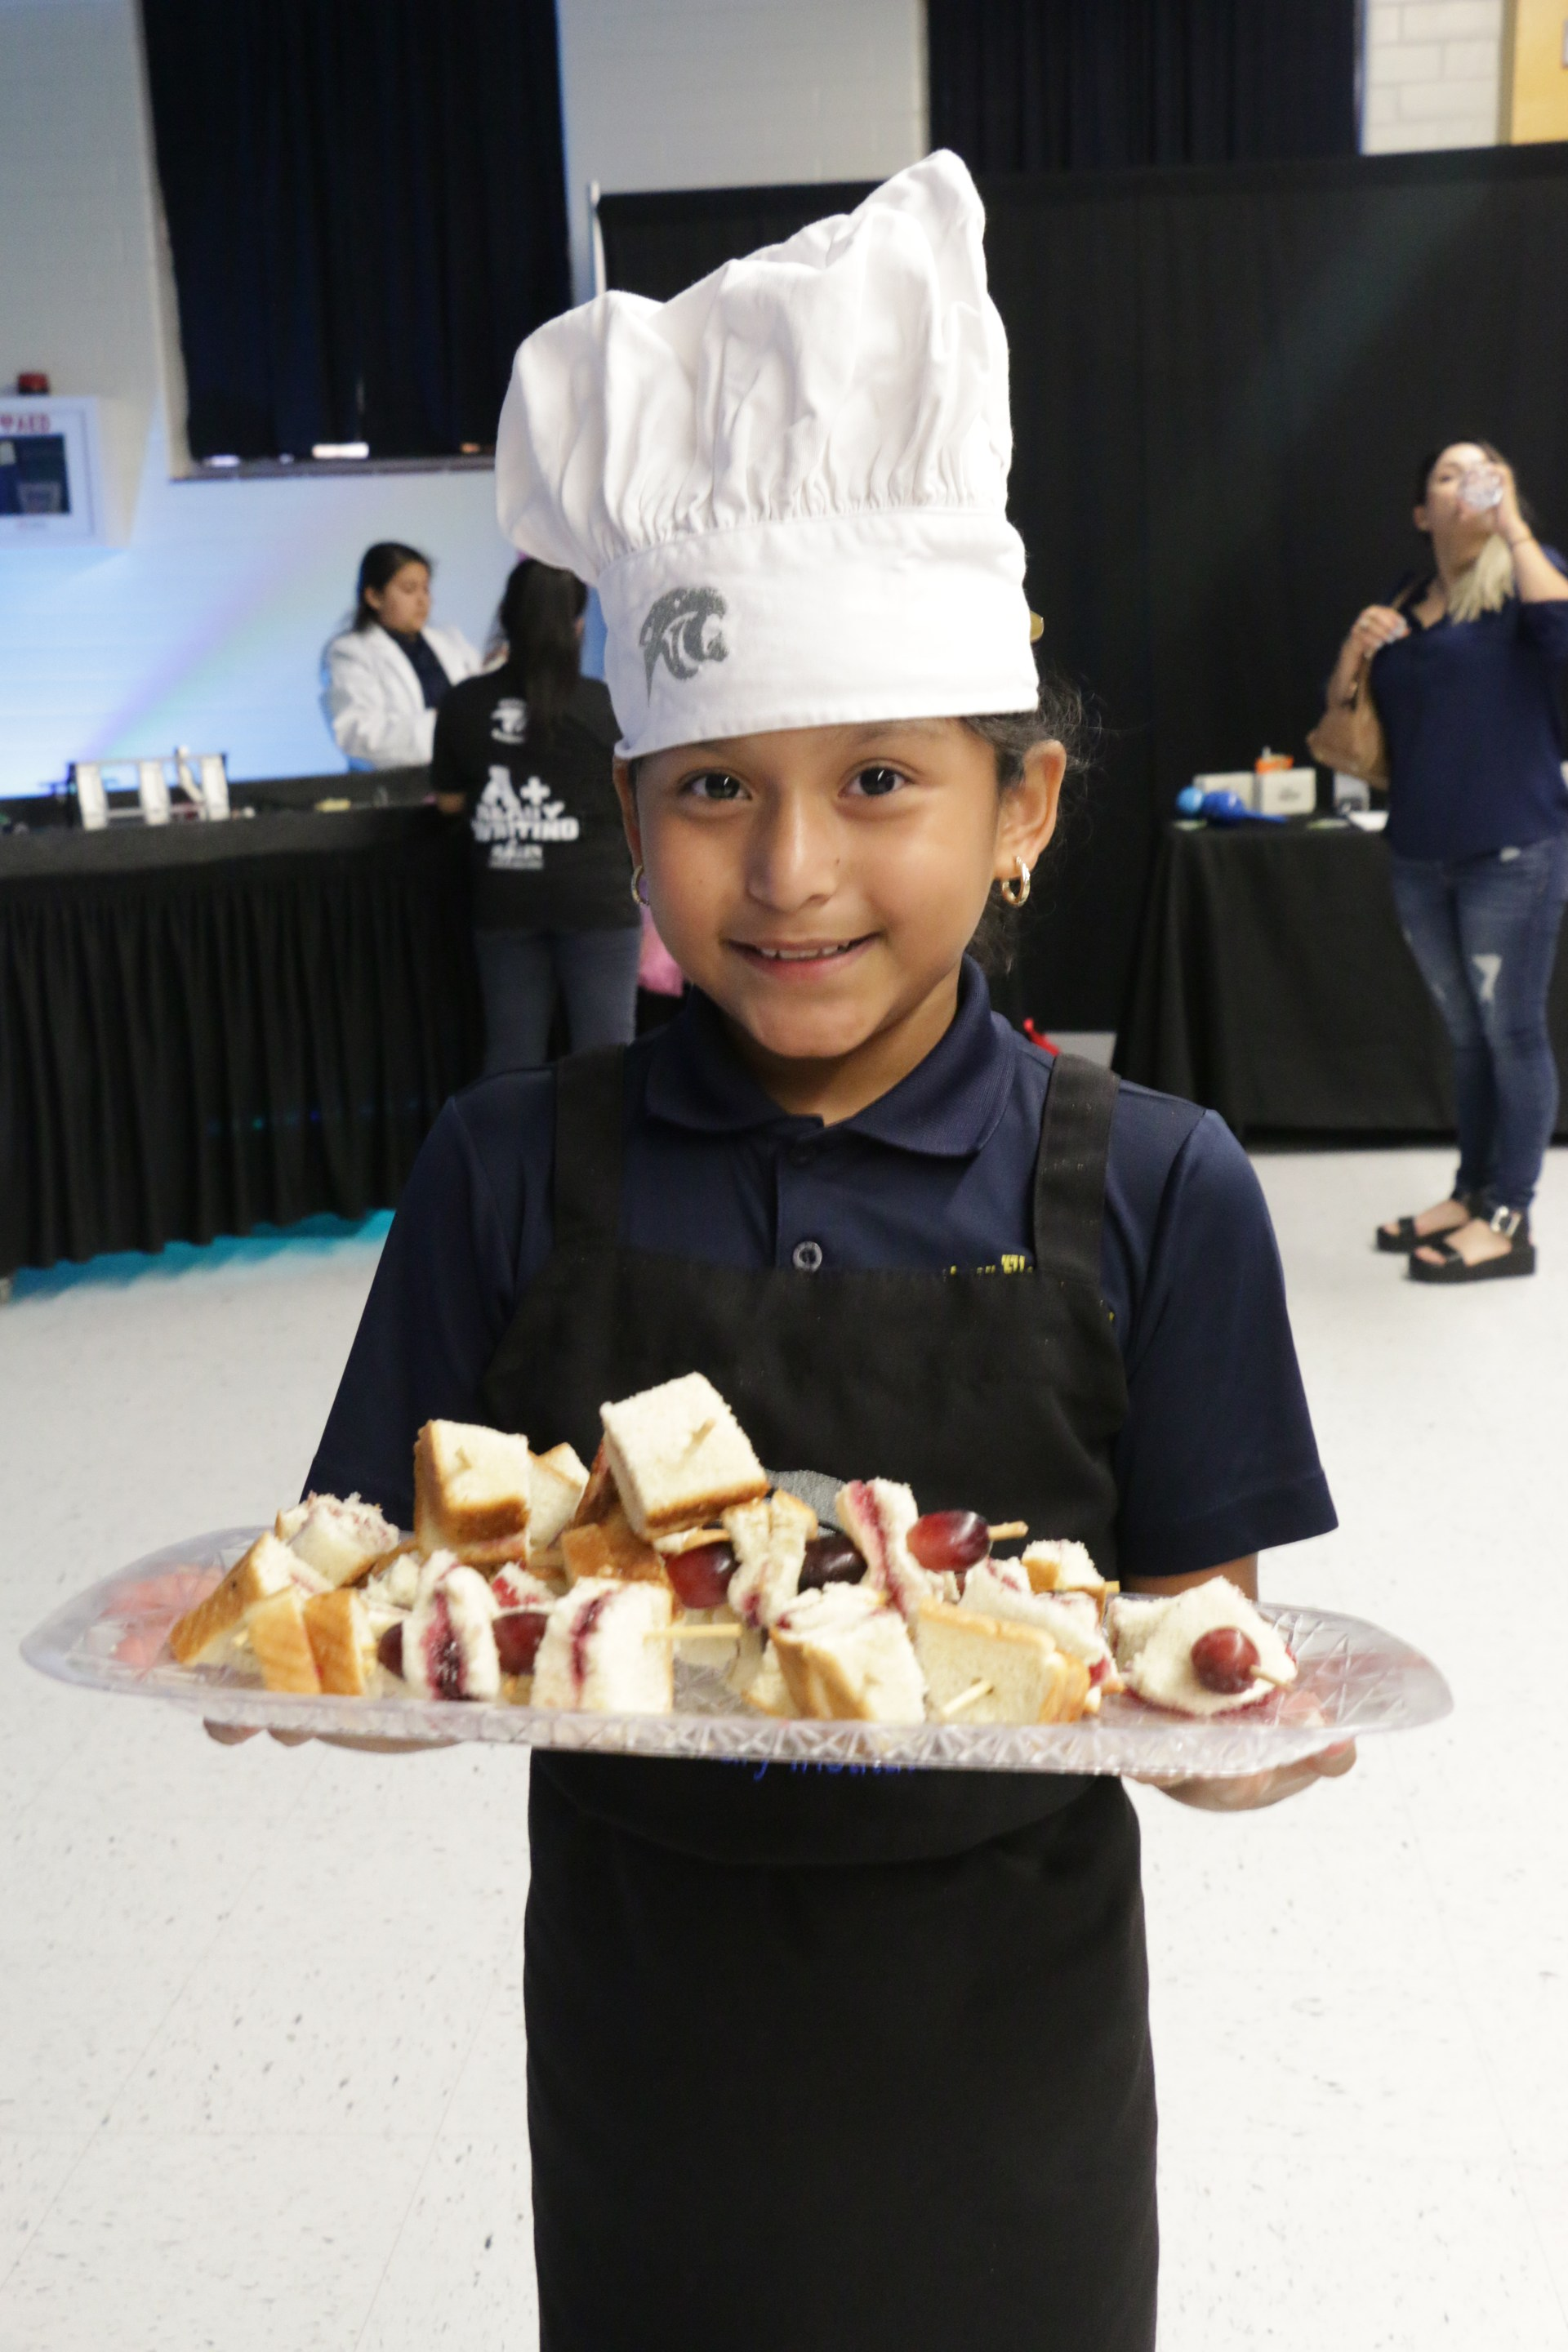 culinary students show their skills